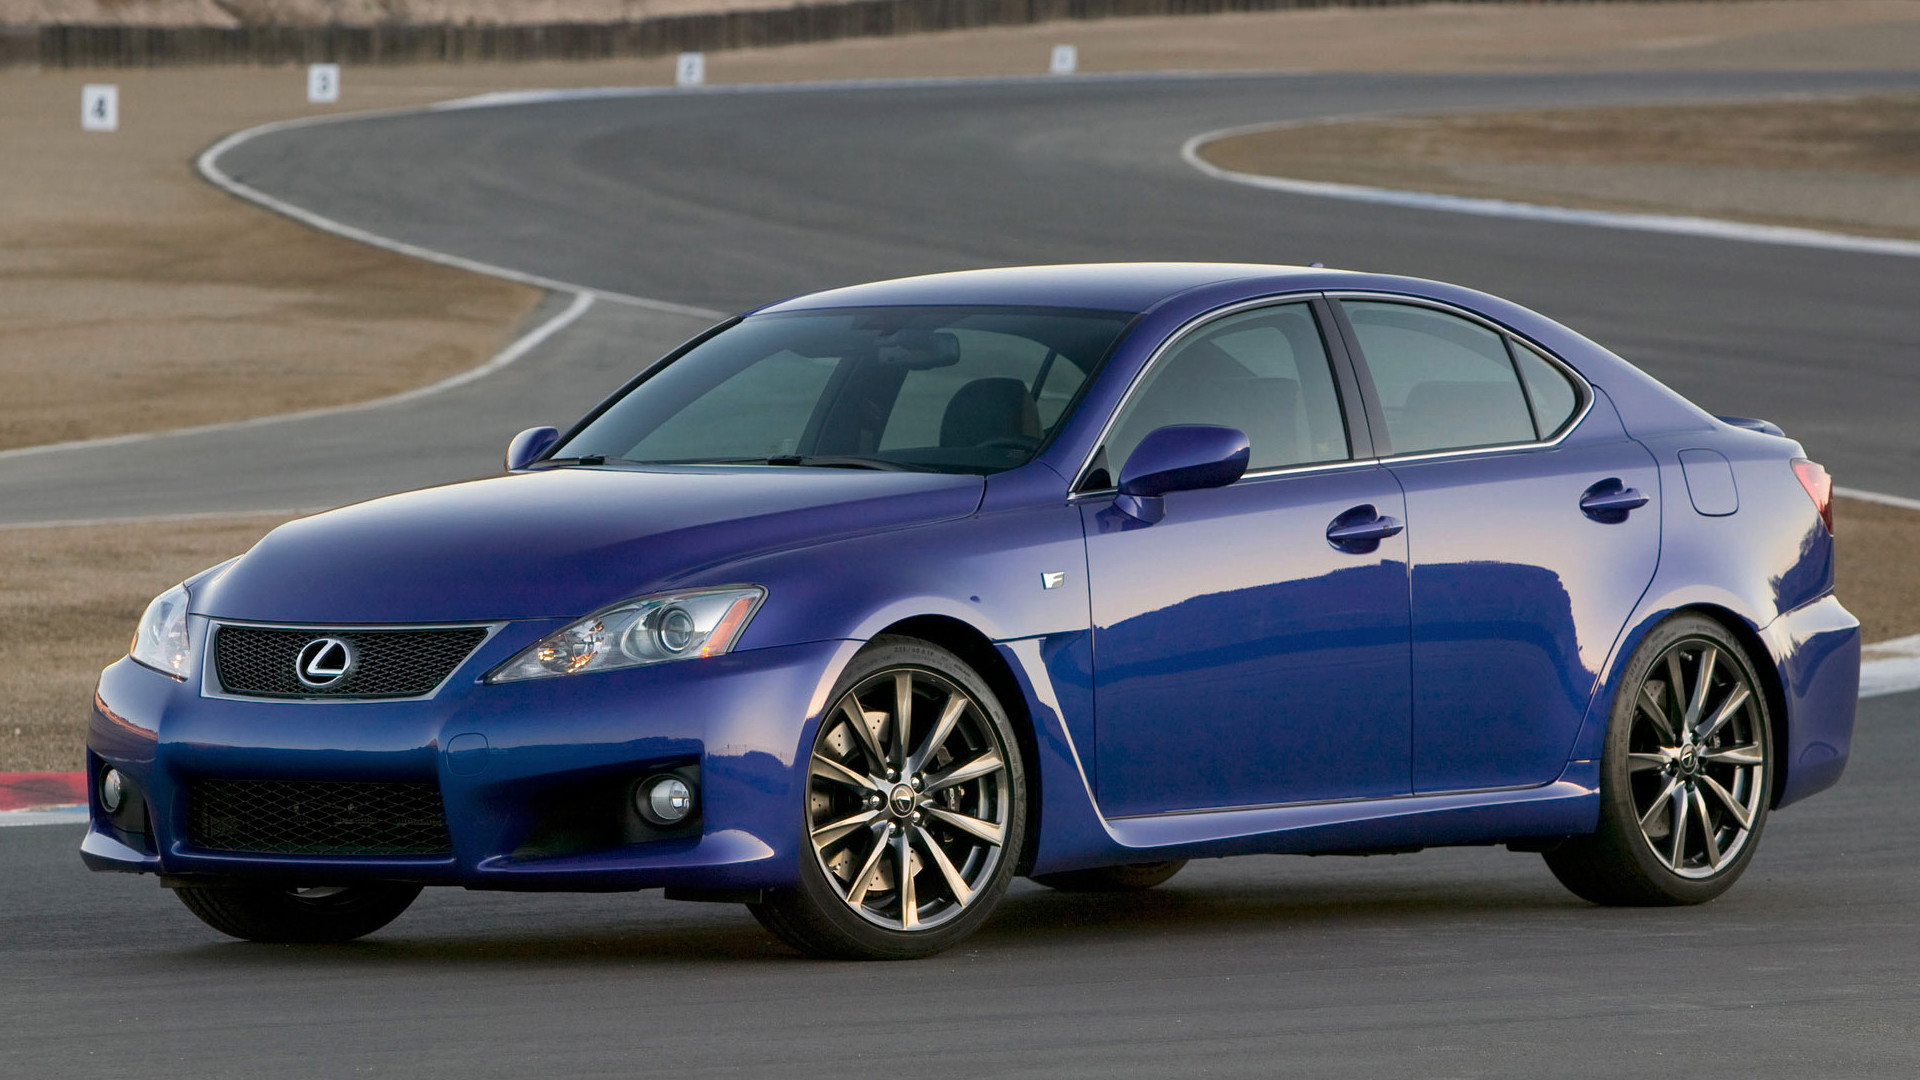 Res: 1920x1080, Car wallpapers: Lexus IS F